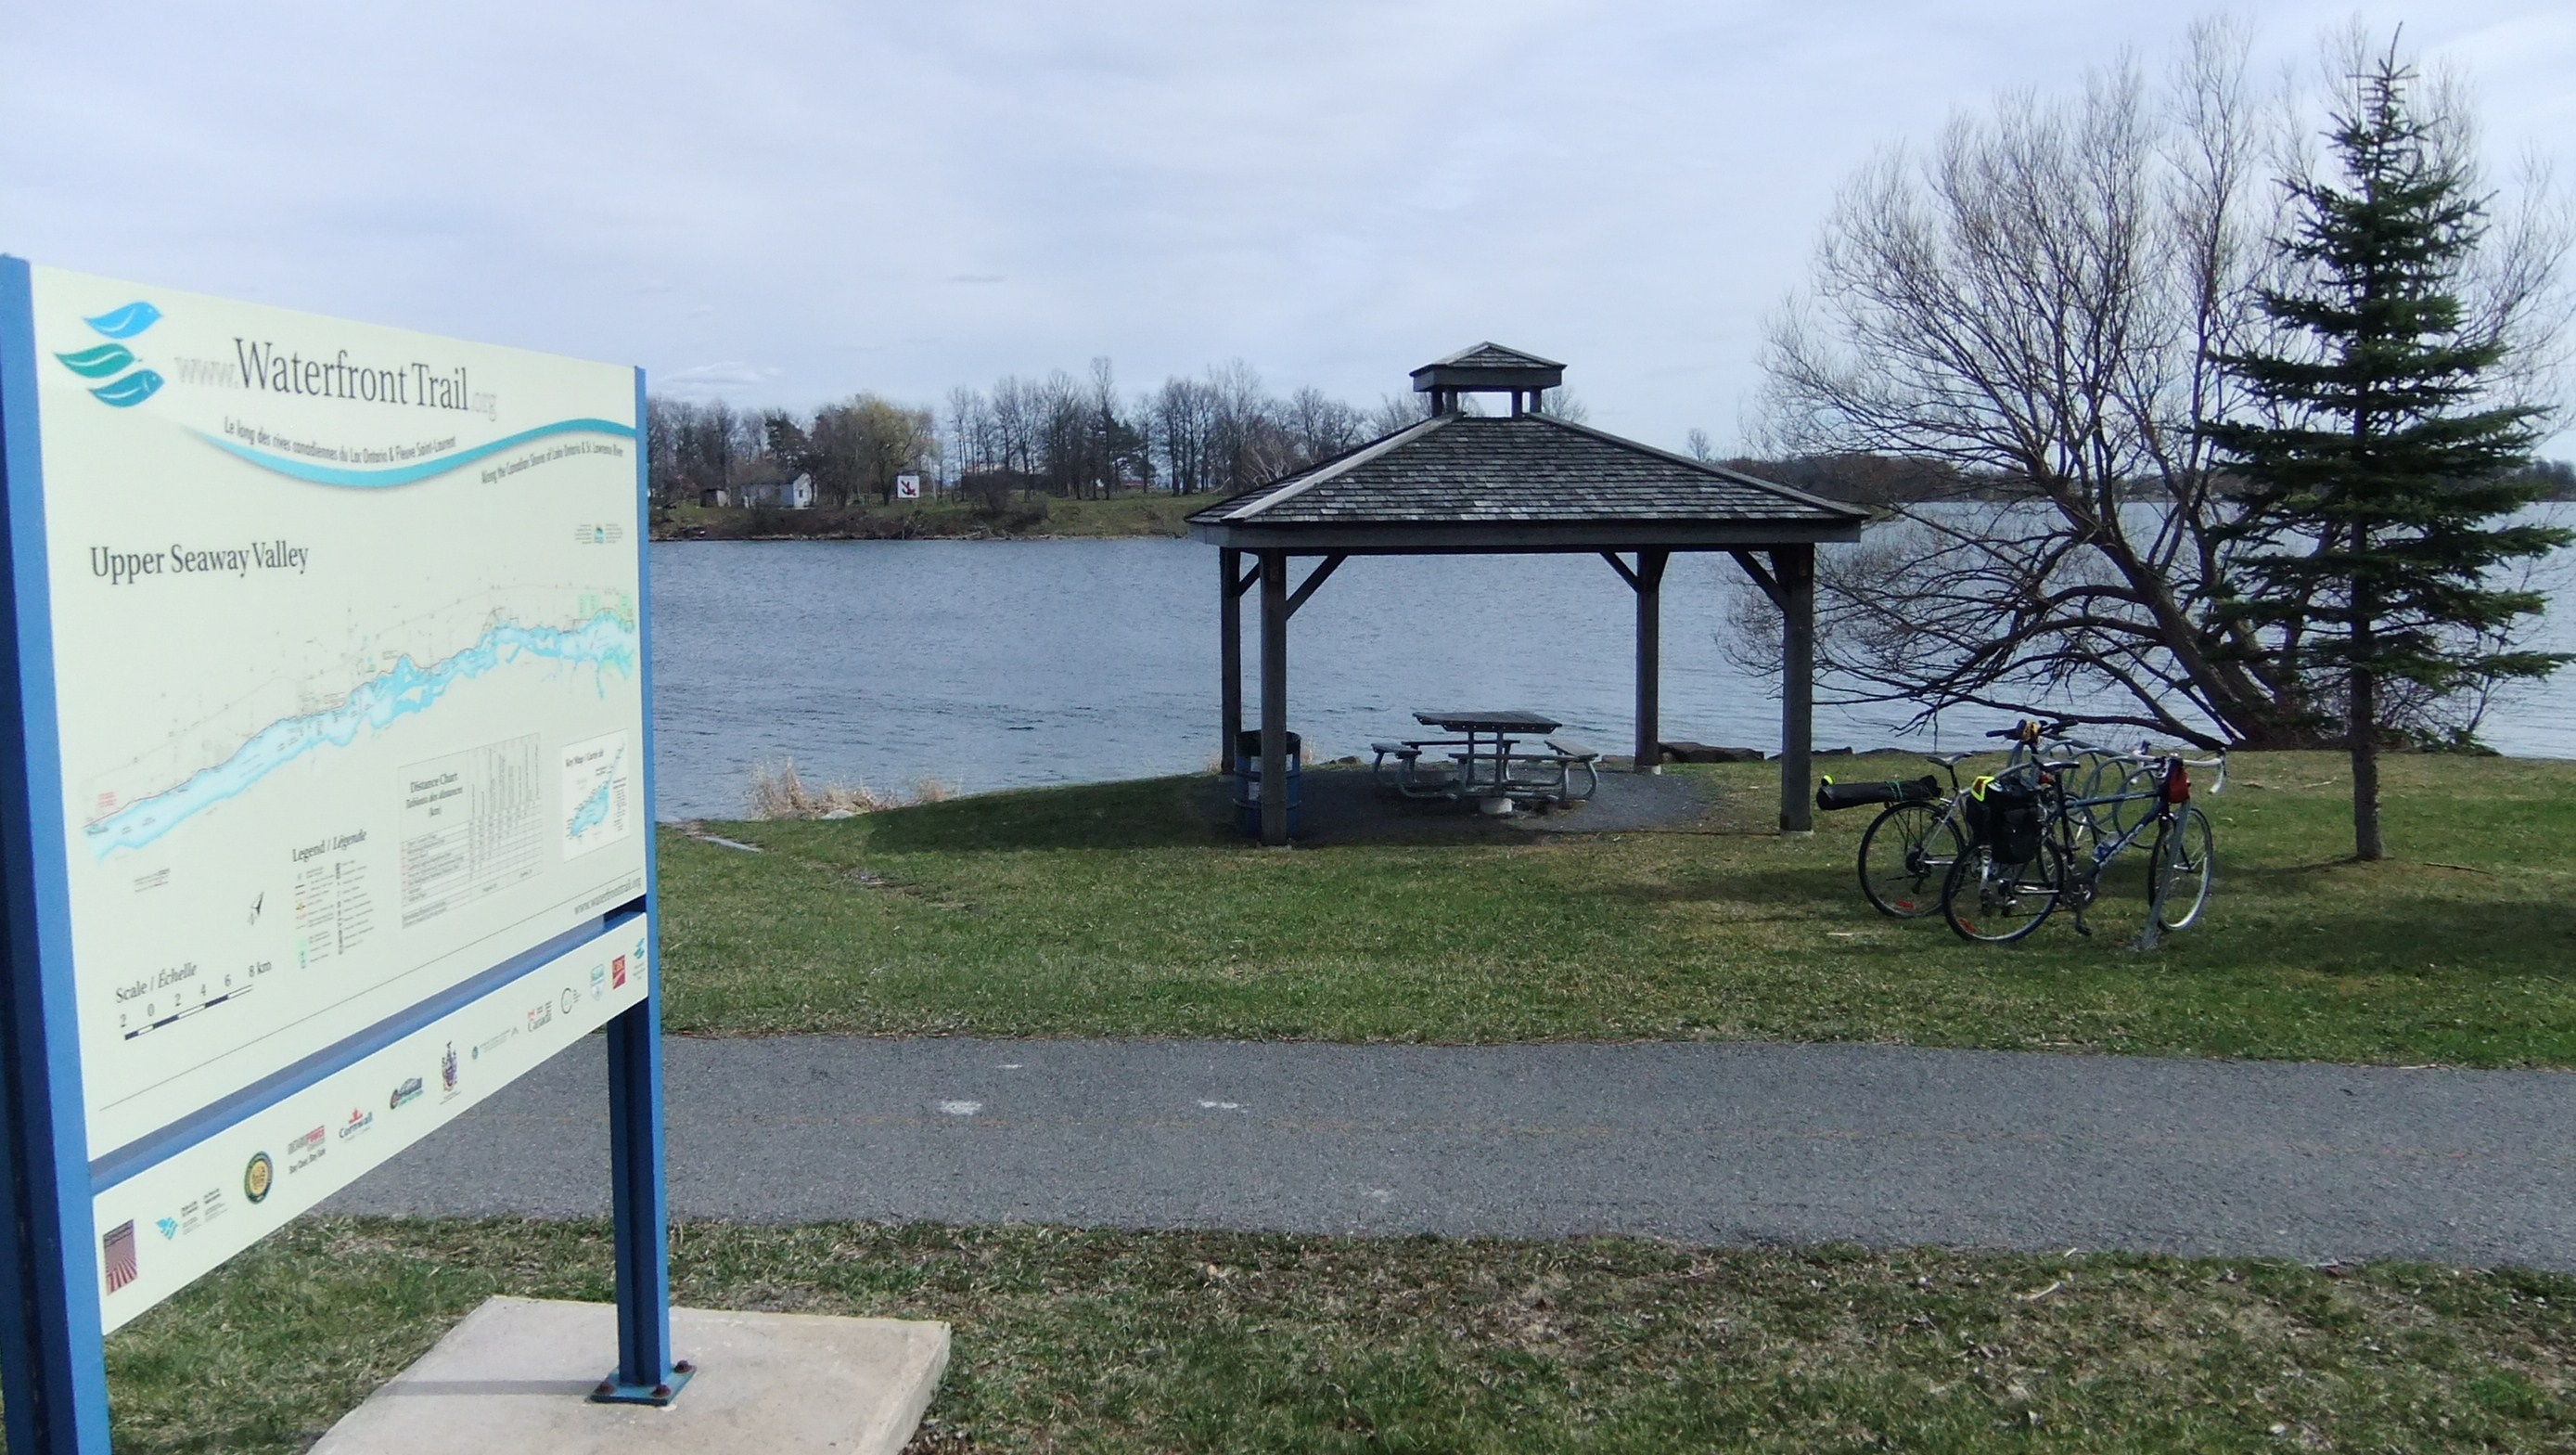 Picnic shelter, bike rack, and Waterfront Trail map